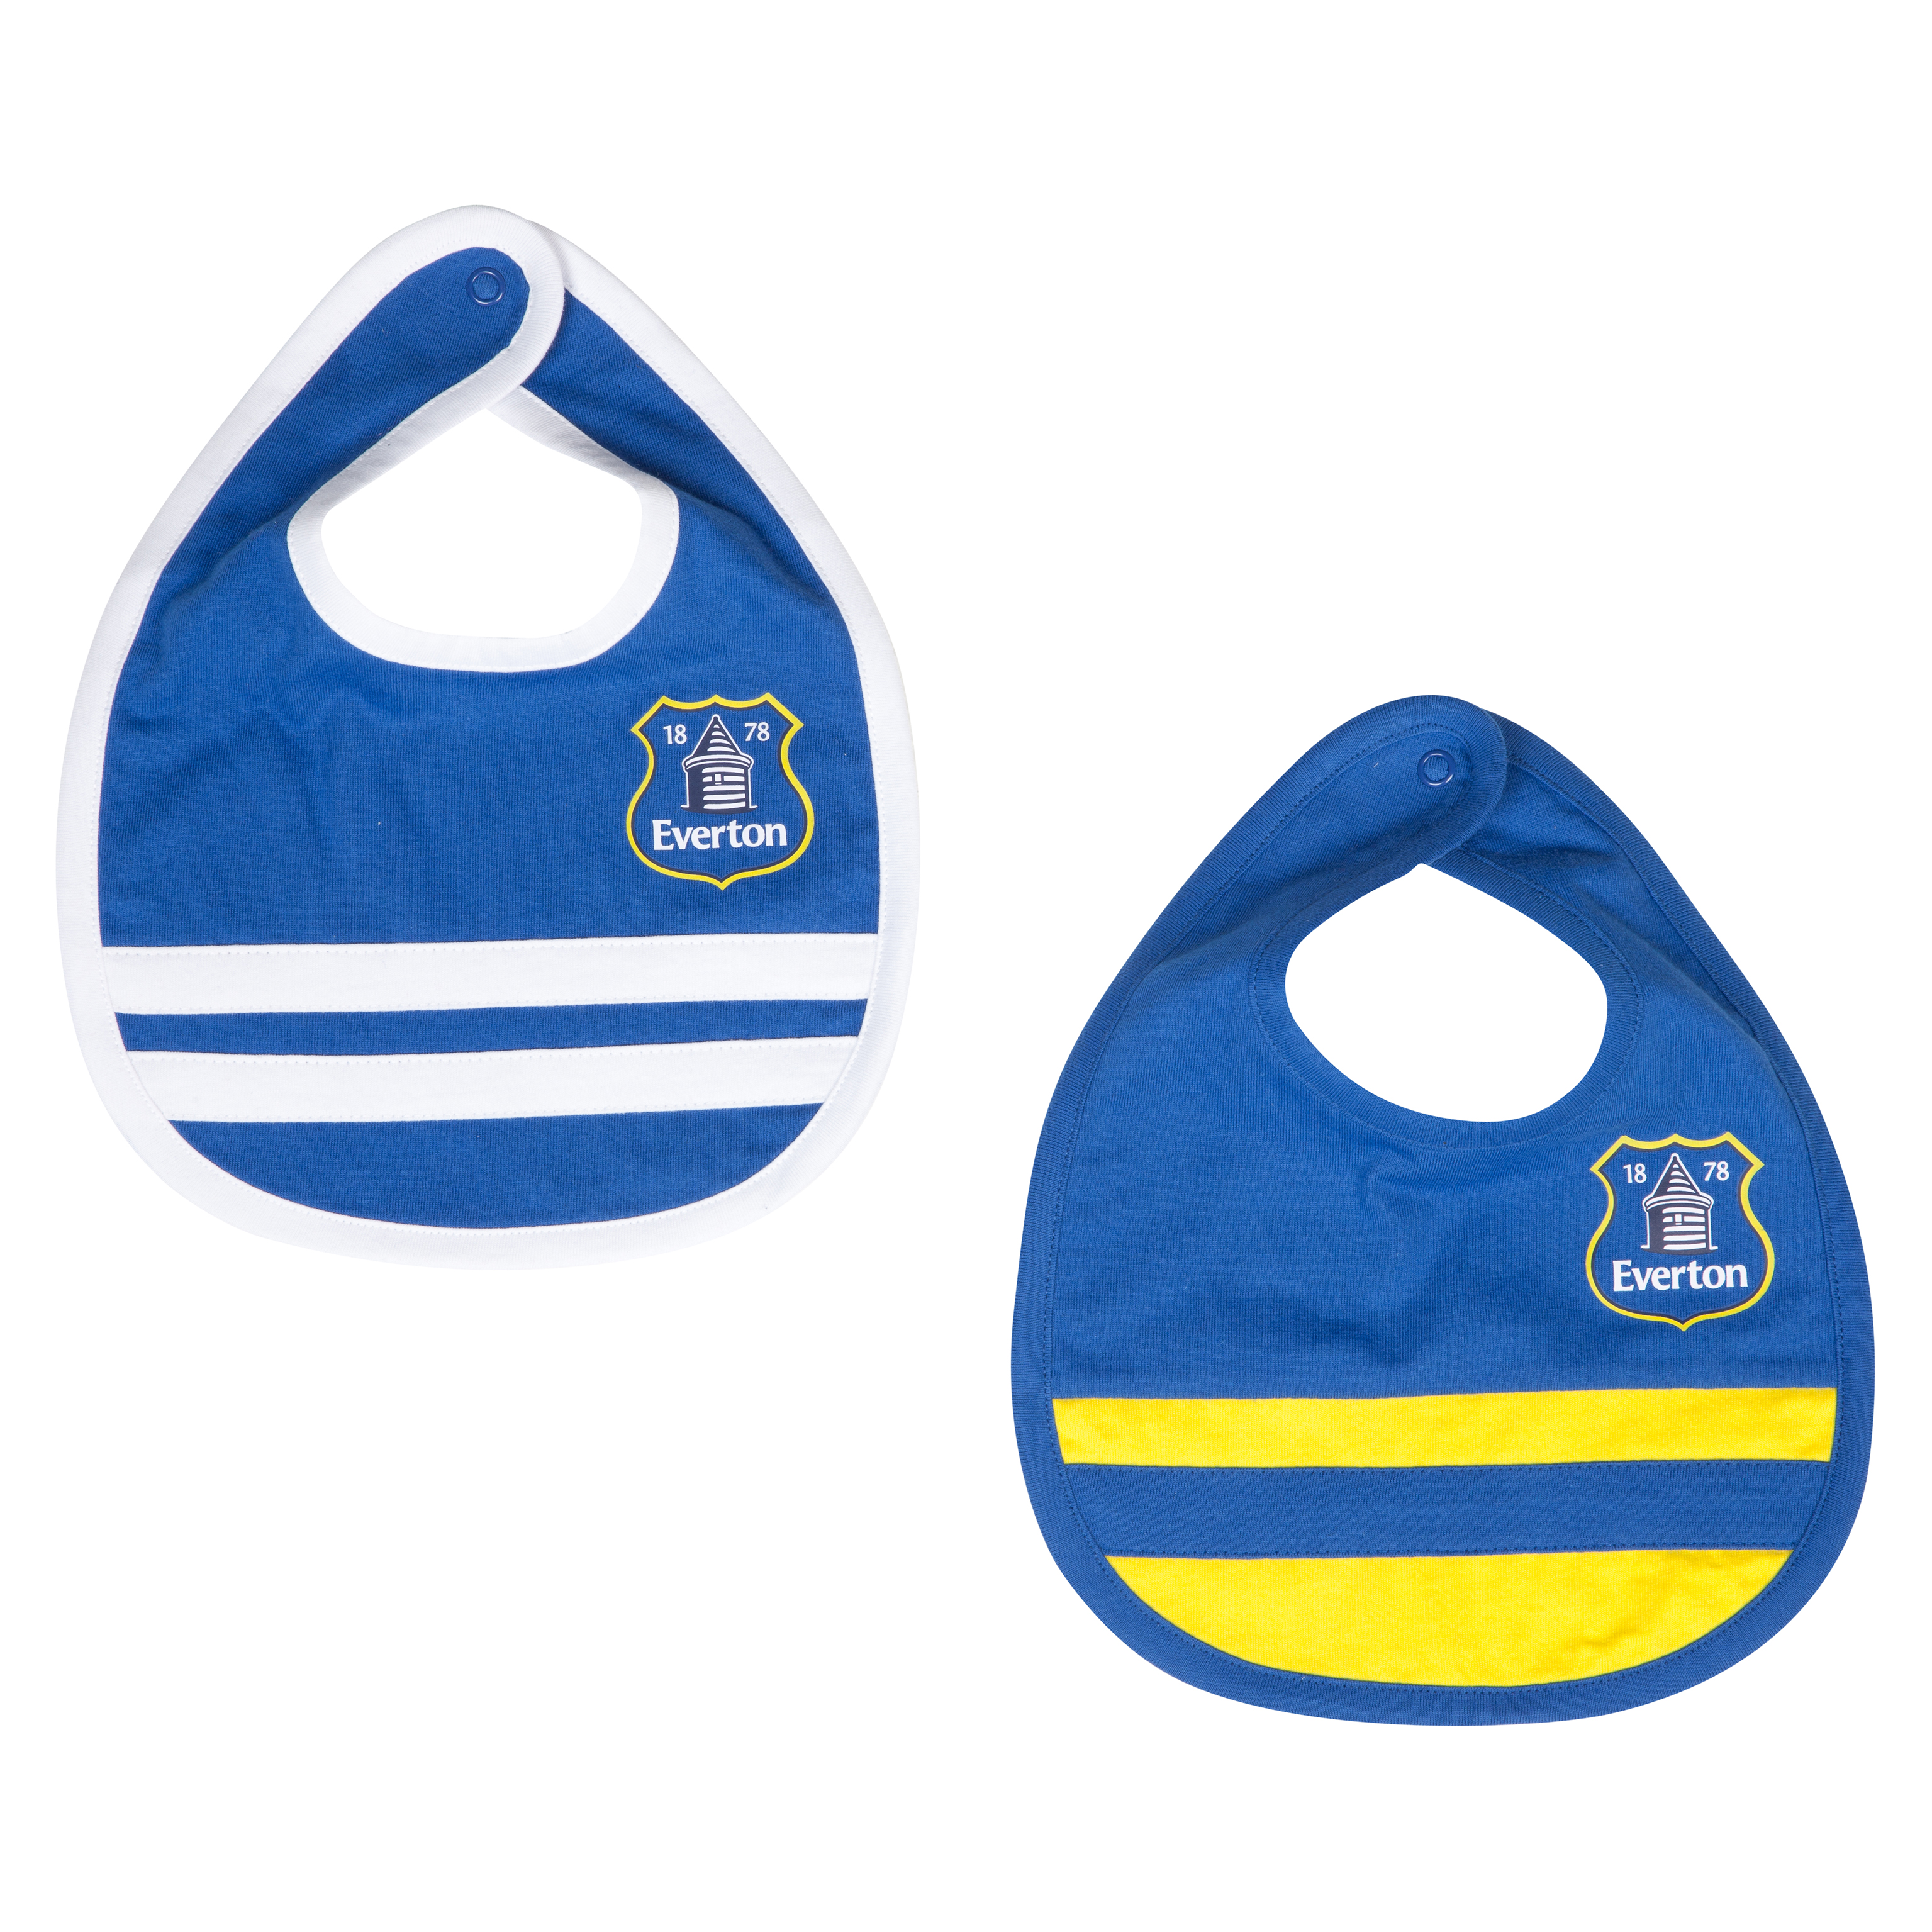 Everton 13/14 Home and Away Bibs - Blue/Yellow - Baby